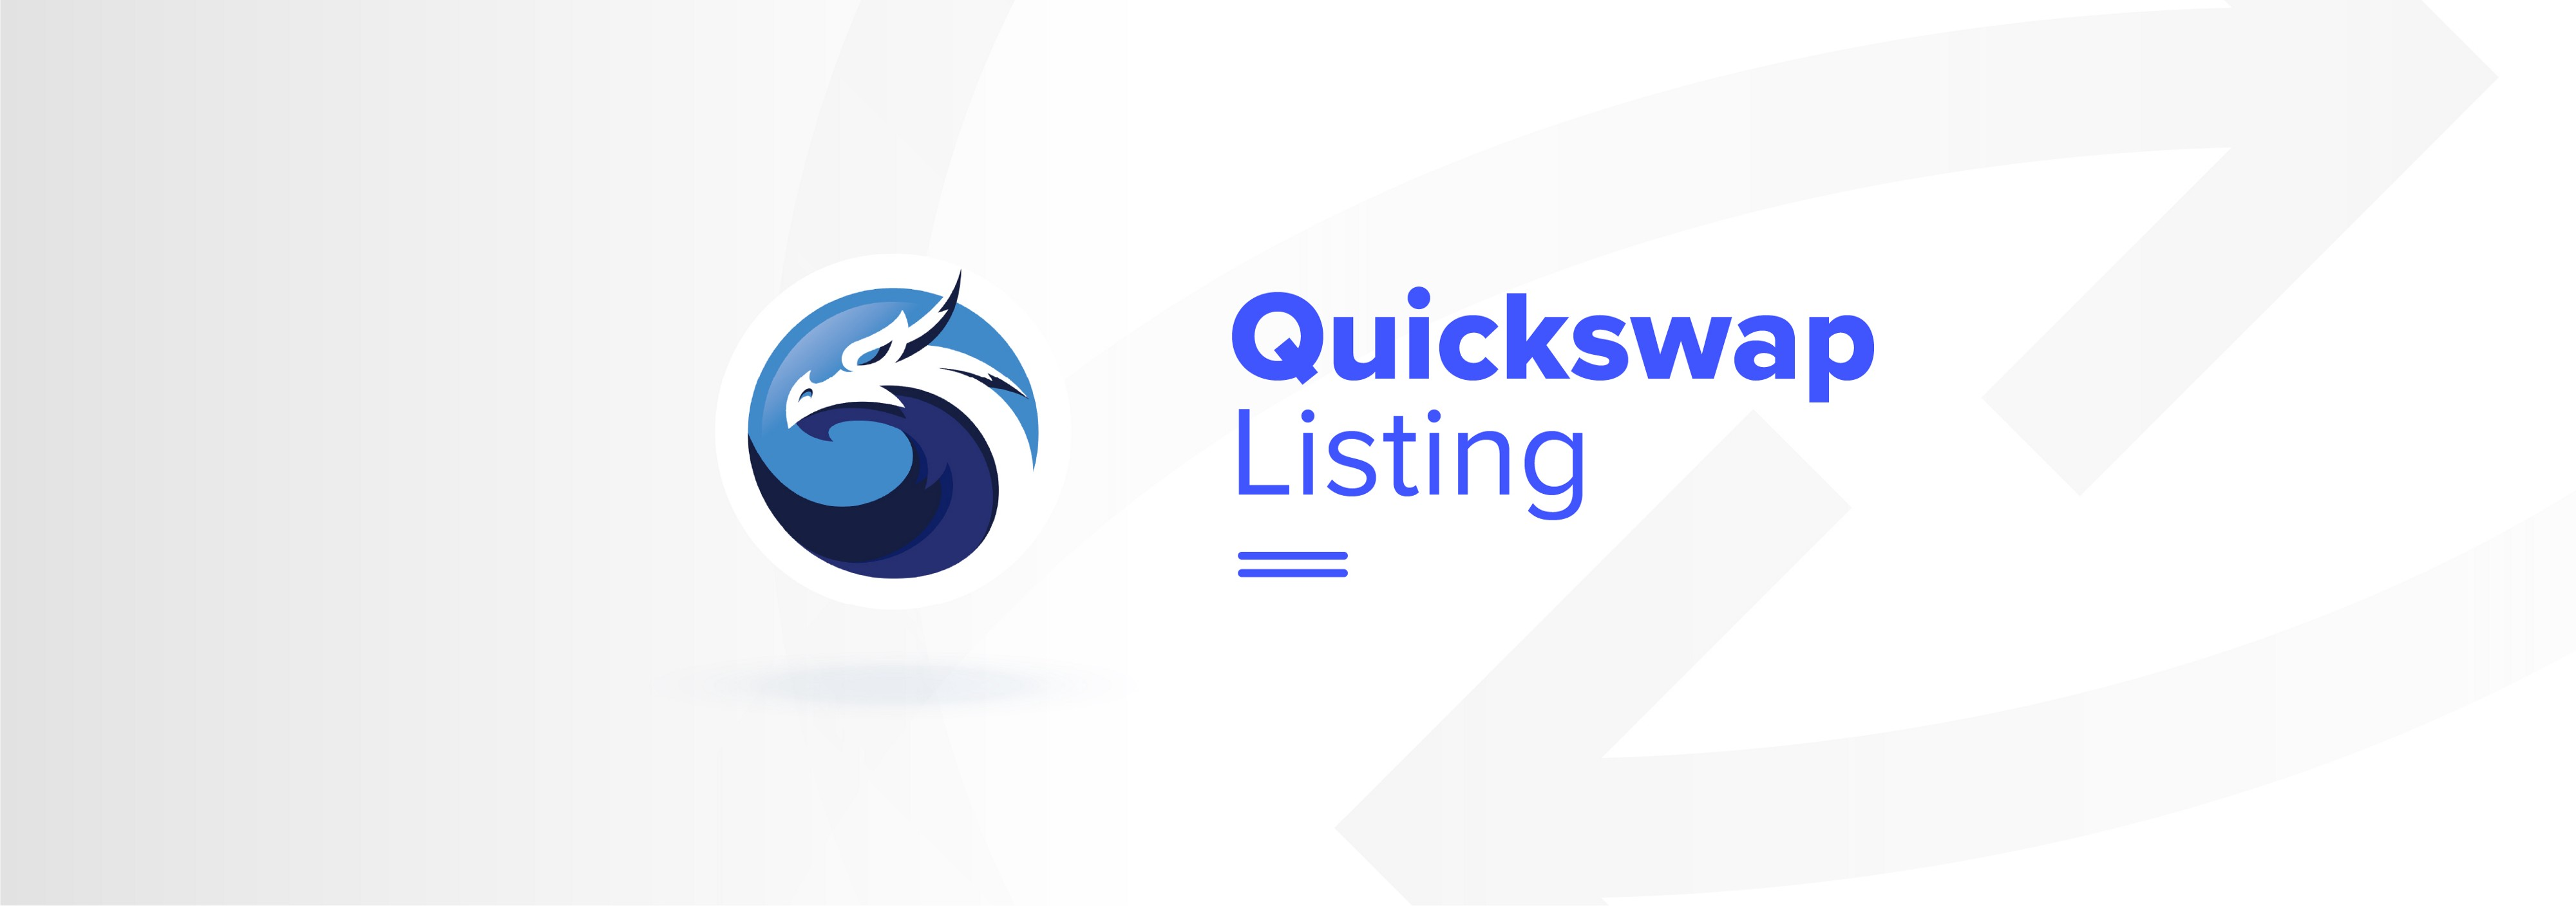 RCN is listed in the largest decentralized exchange of the Polygon Network, Quickswap.